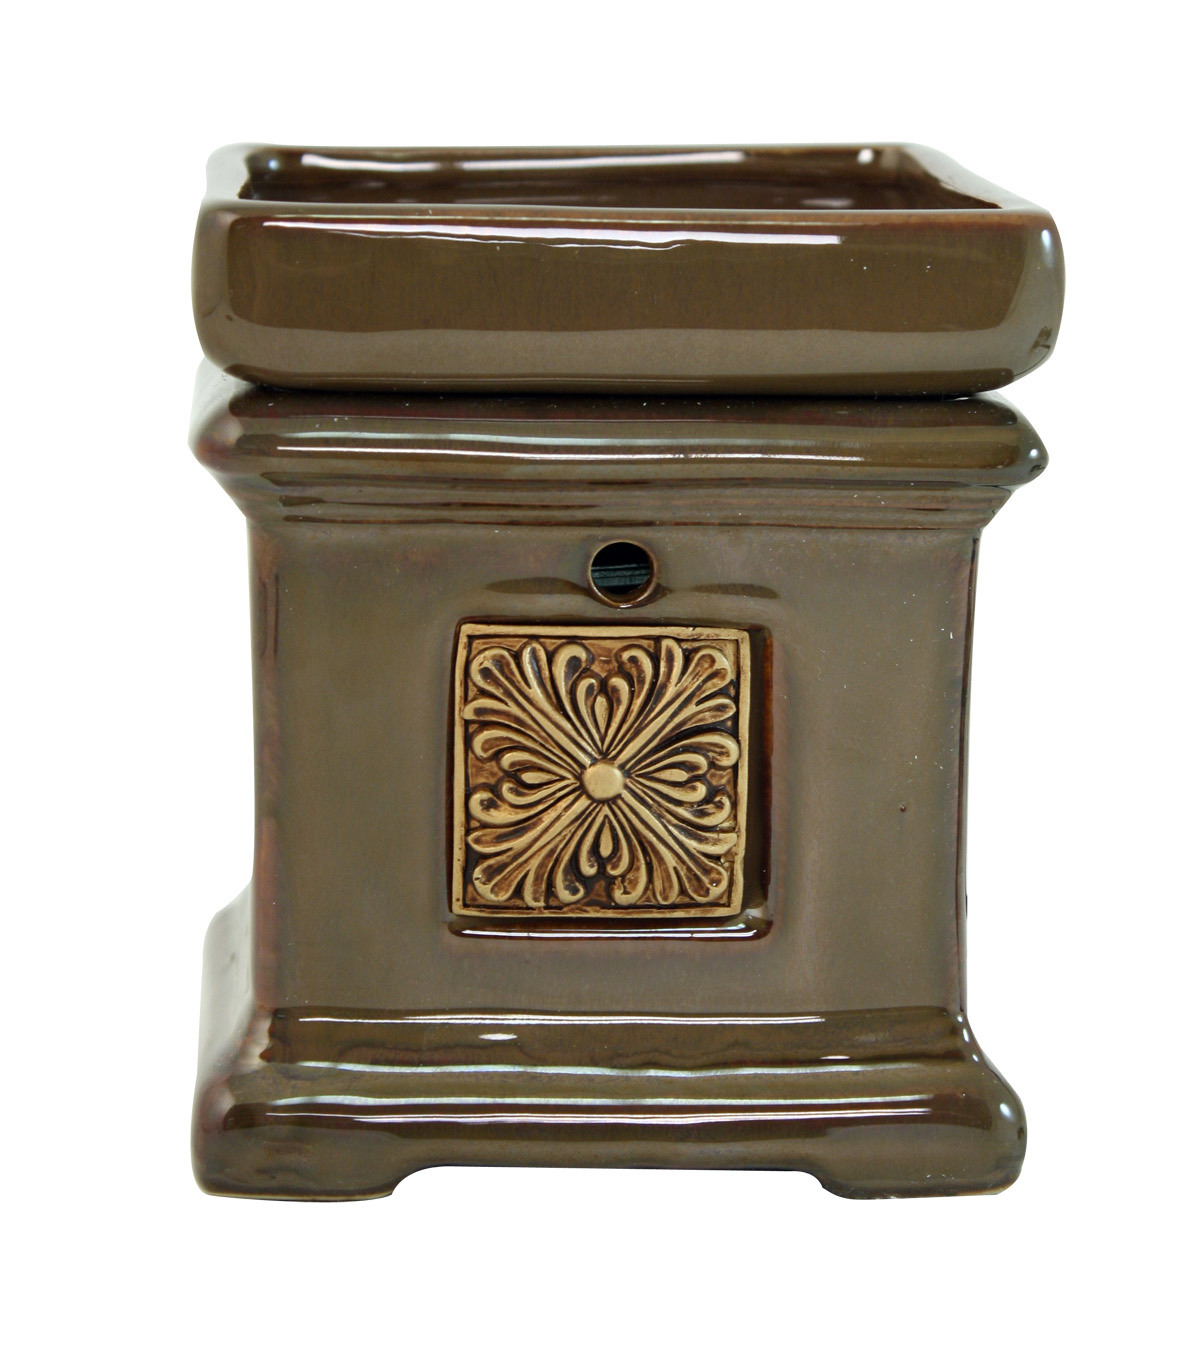 Hudson 43™ Candle & Light Collection Brown Square Emblem Warmer